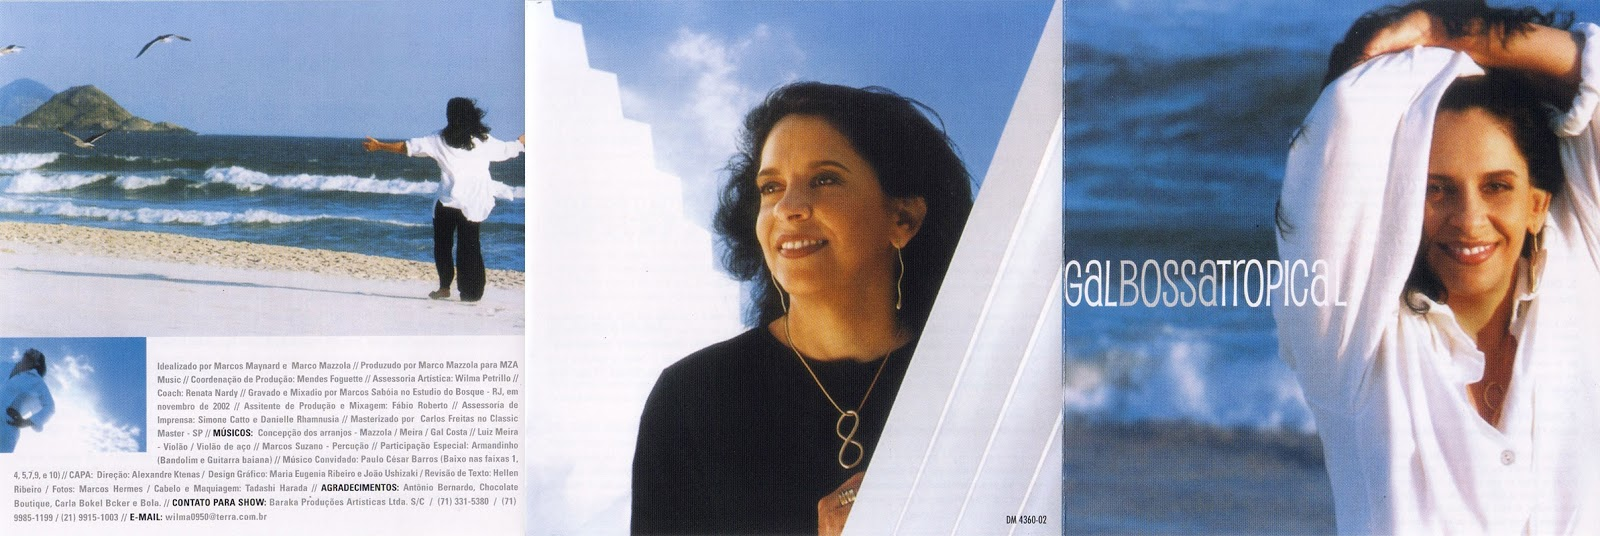 cd gal costa bossa tropical